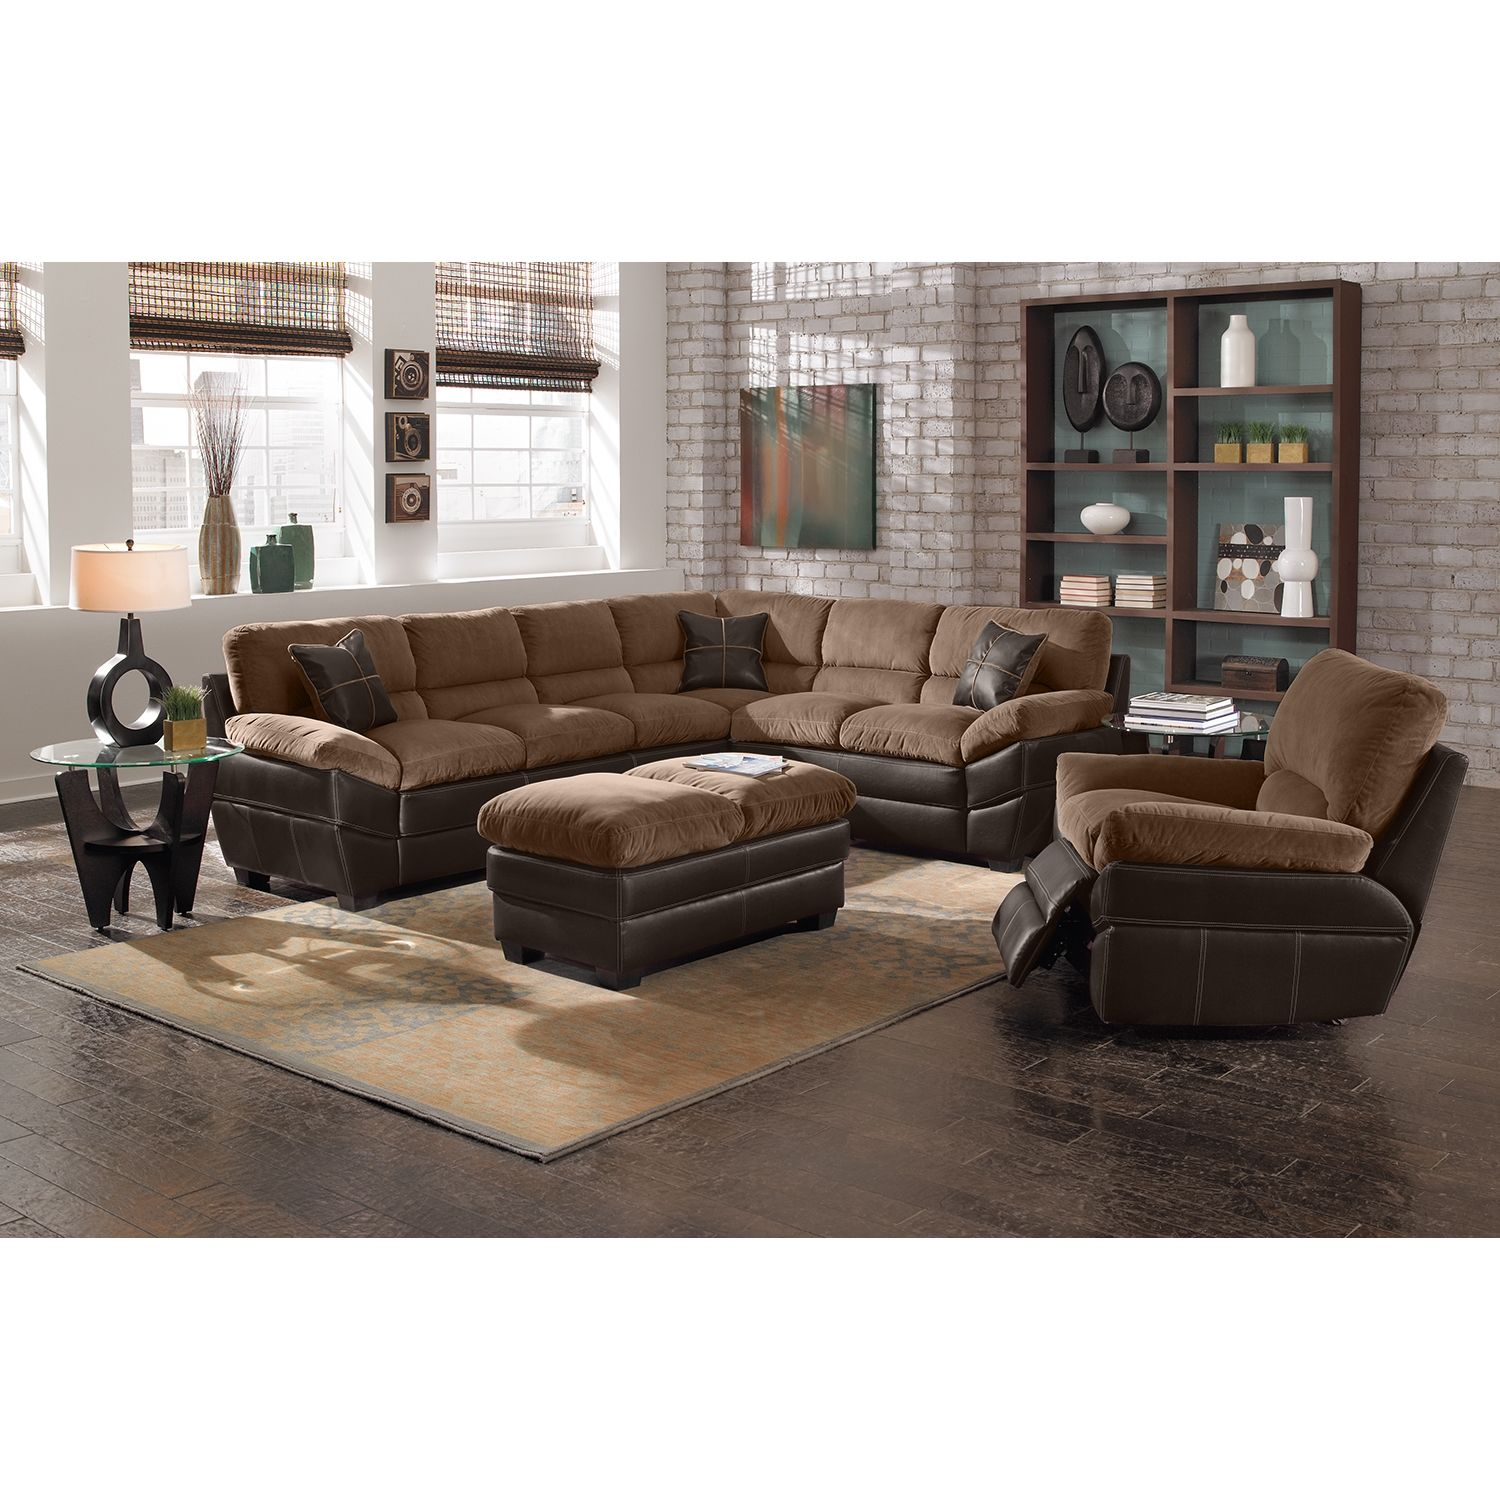 Merveilleux Chandler Upholstery 2 Pc. Sectional   Value City Furniture